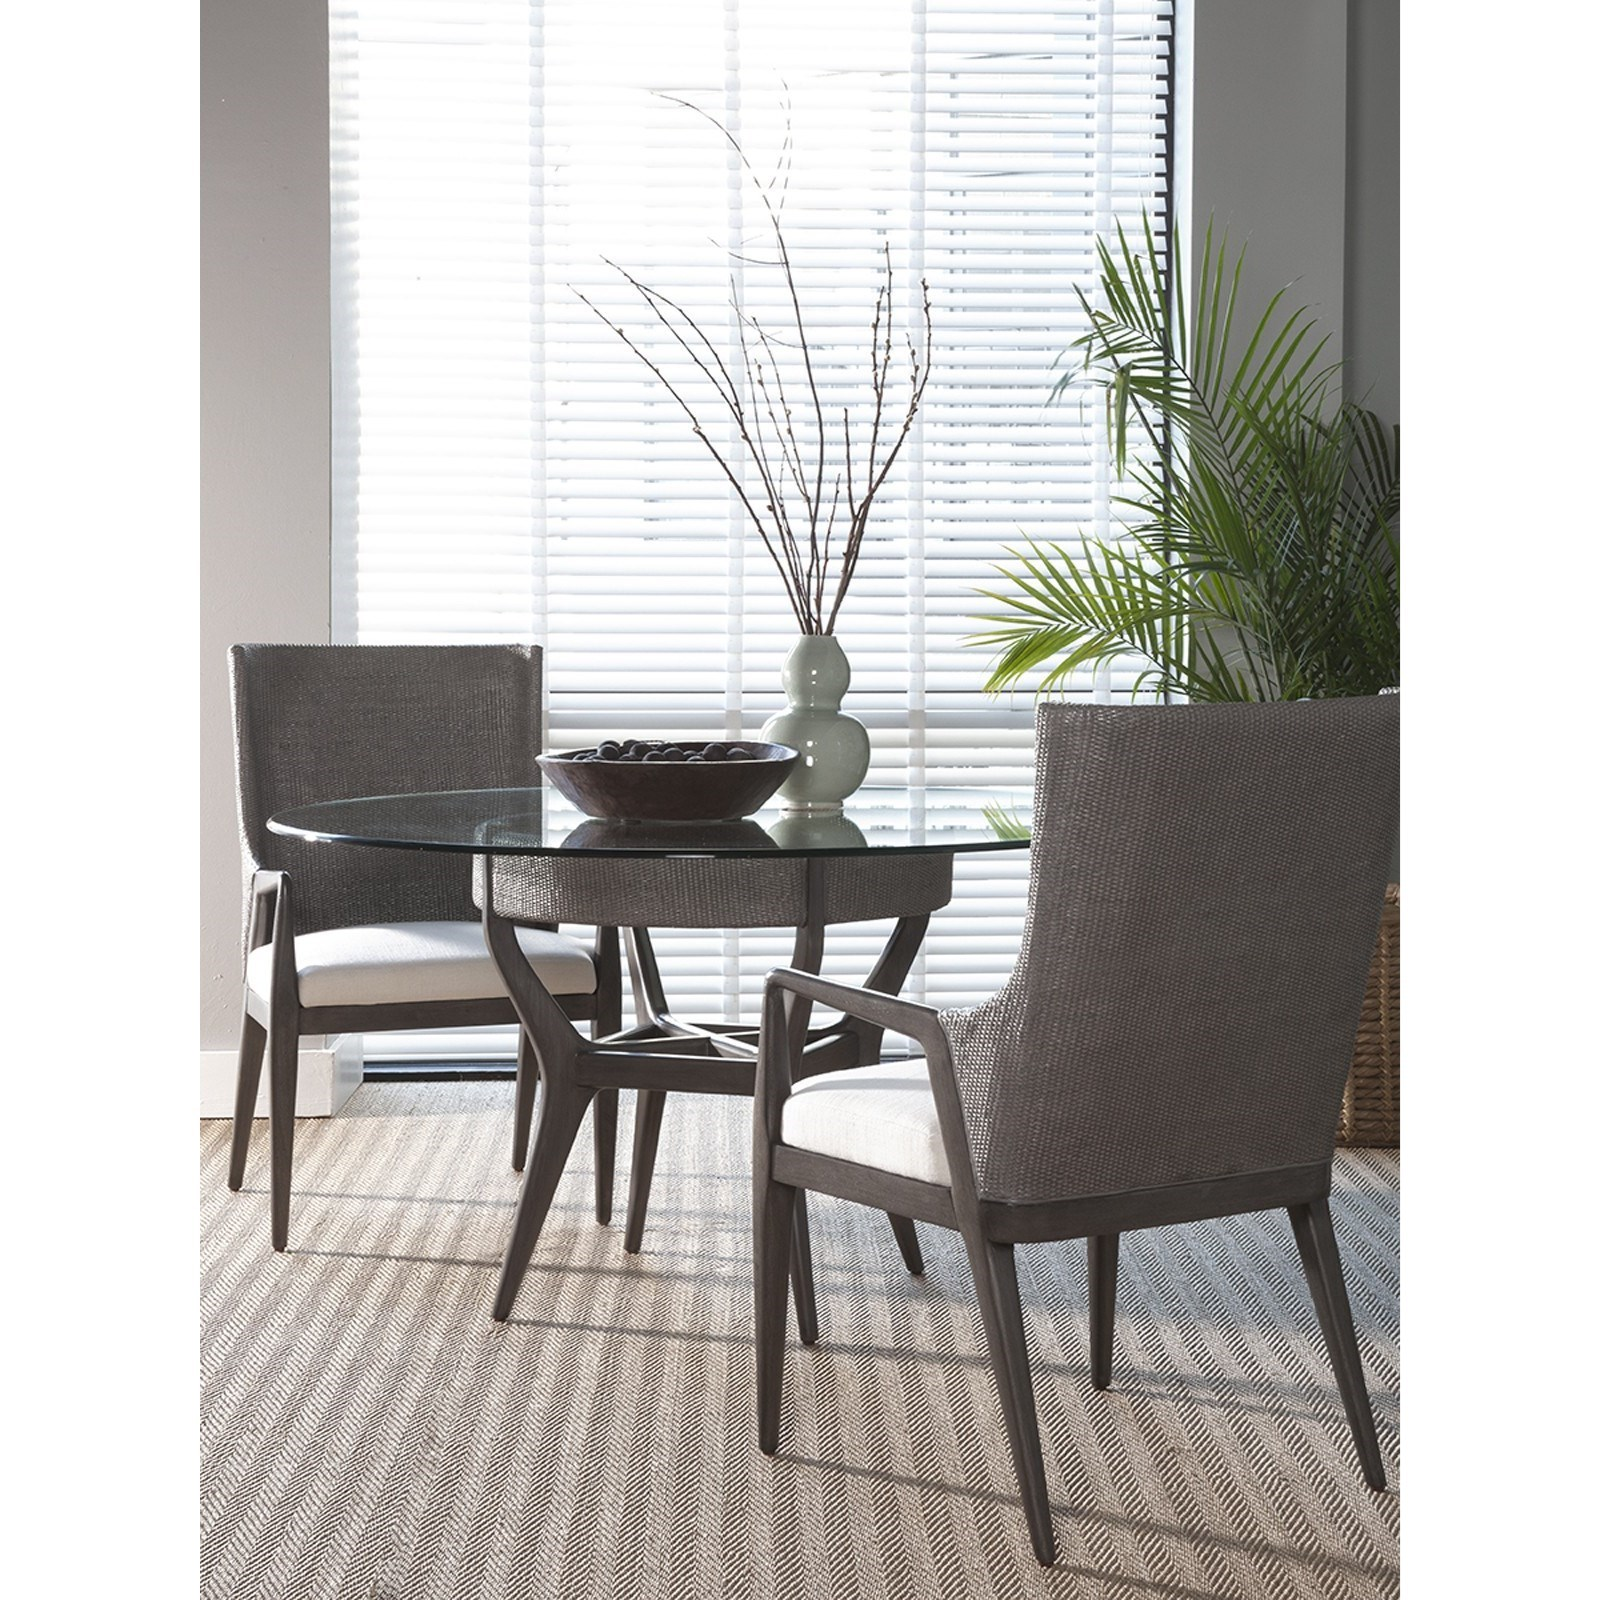 Formosa 3 Pc Dining Set by Artistica at Baer's Furniture